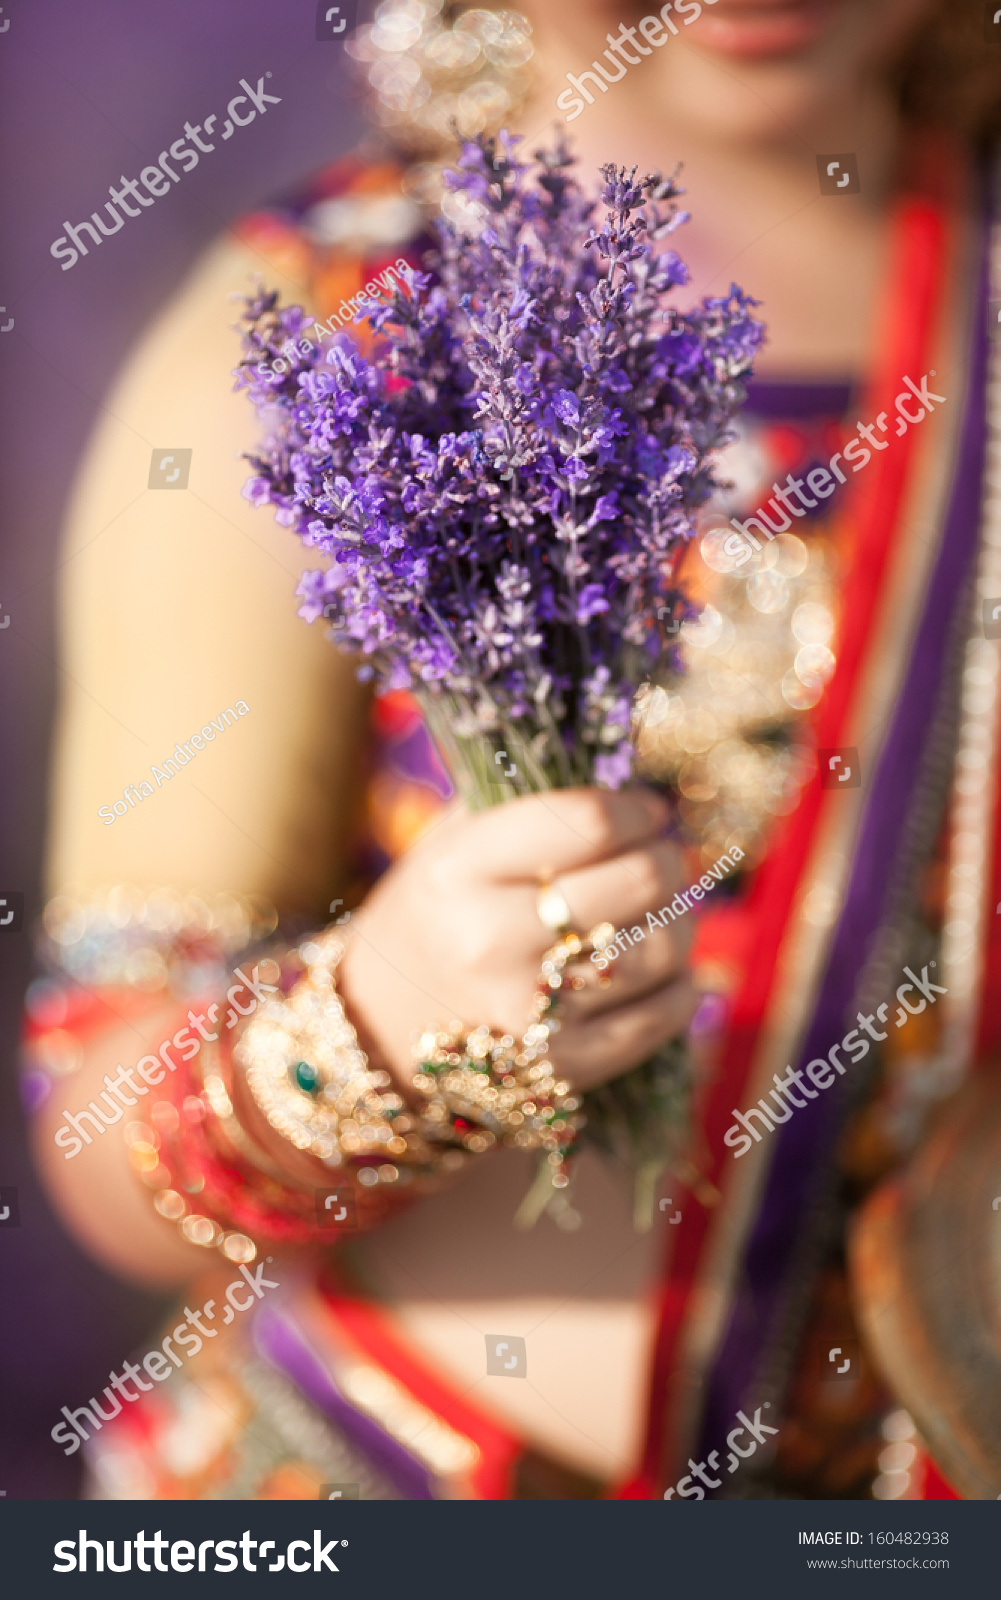 indian holding lavender flowers aromatherapy stock photo